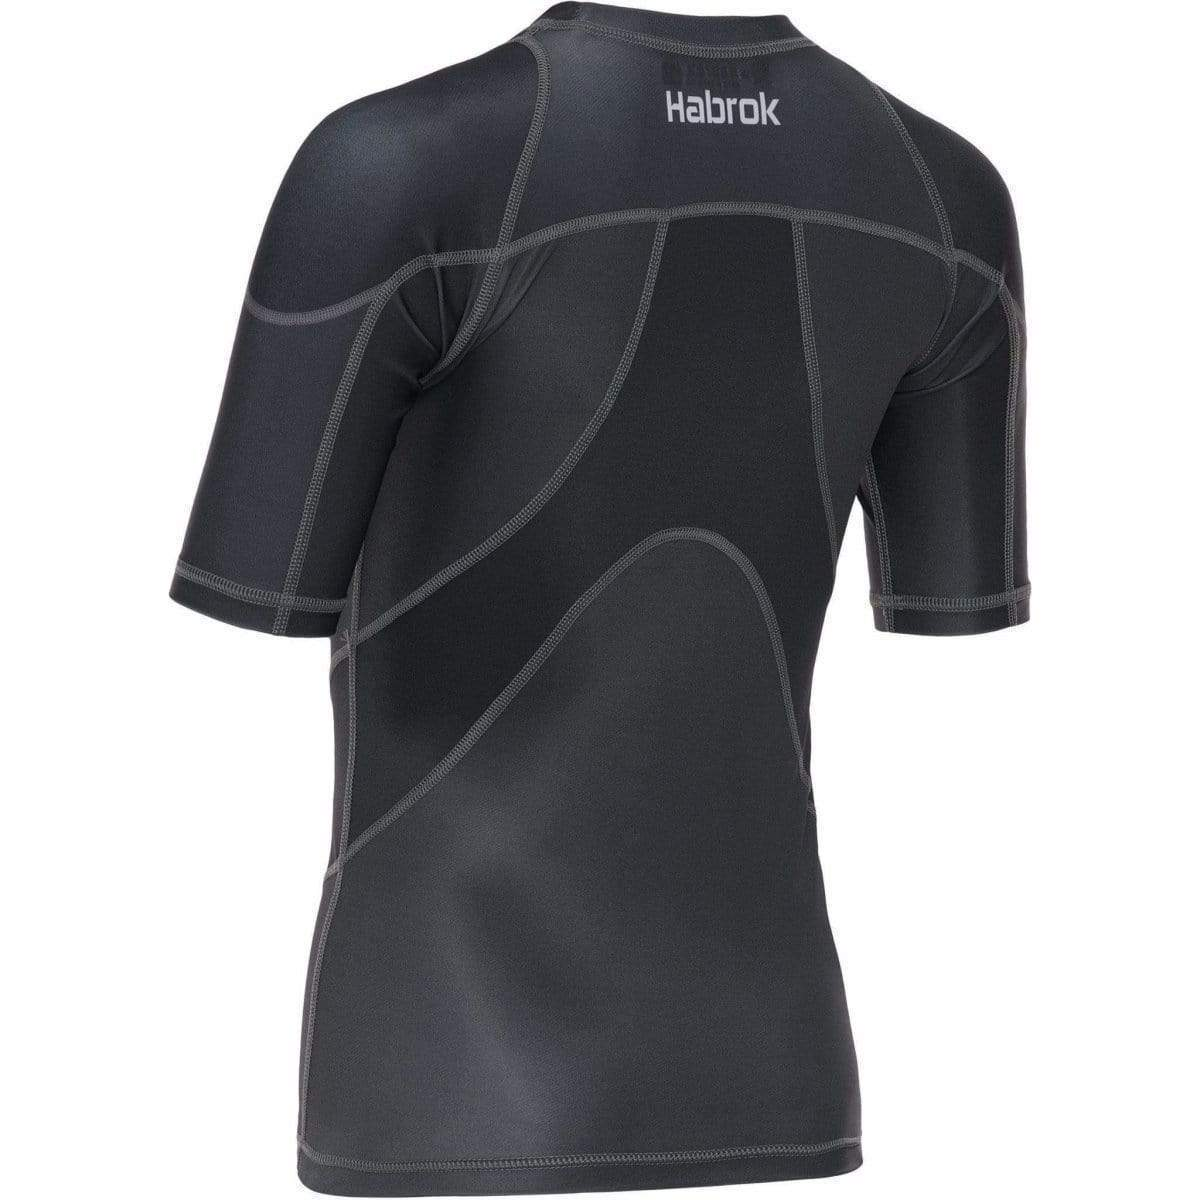 Habrok Rash Guard Pugnator 2.0 | Rash Guard | Women | Half Sleeve | Grey